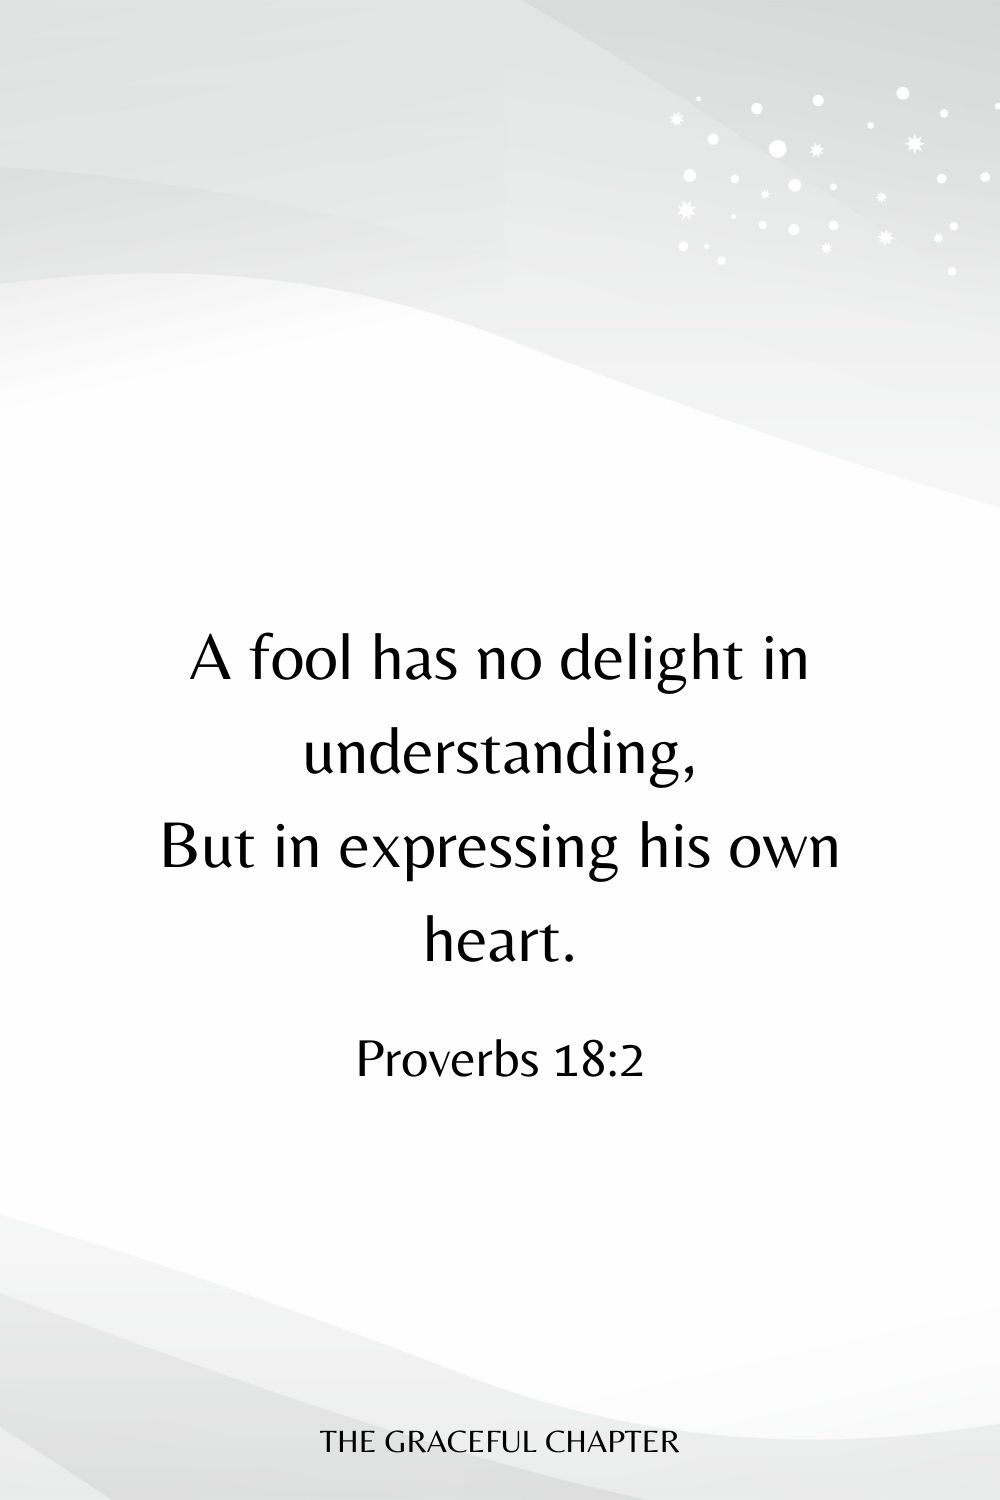 A fool has no delight in understanding, But in expressing his own heart. Proverbs 18:2